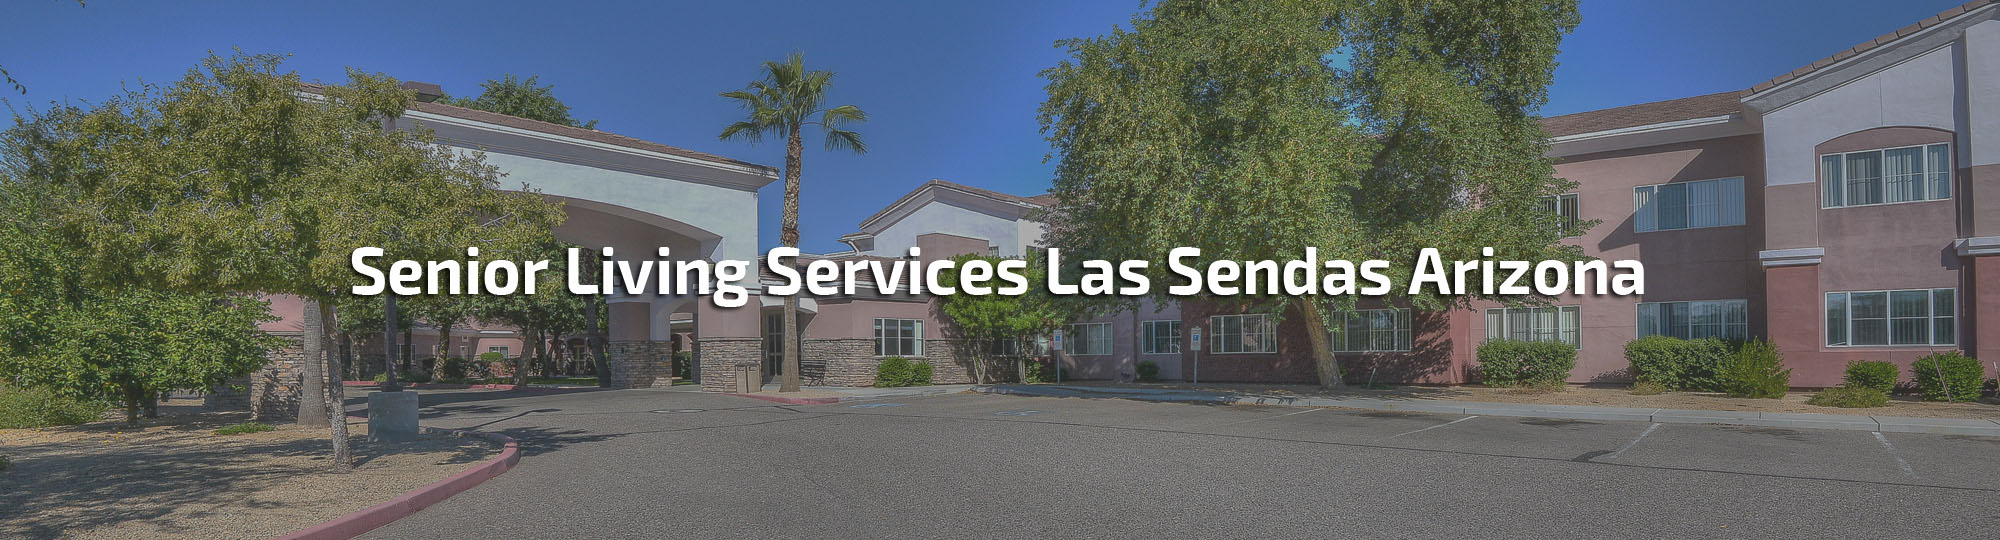 Senior Living Services Las Sendas Arizona